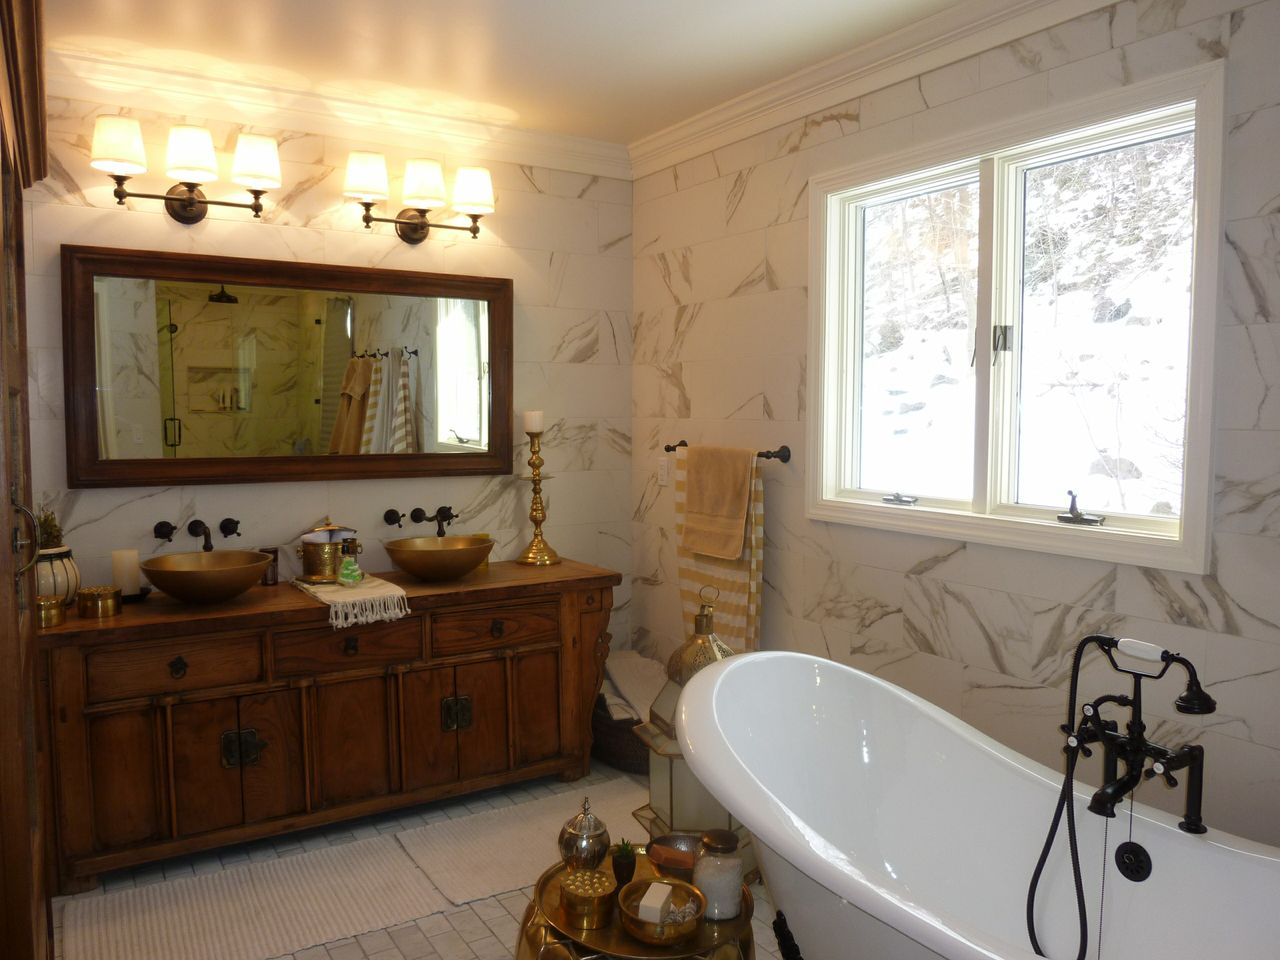 Bathroom Remodel Cost Nj bathroom remodeling costs | nj kitchens and baths